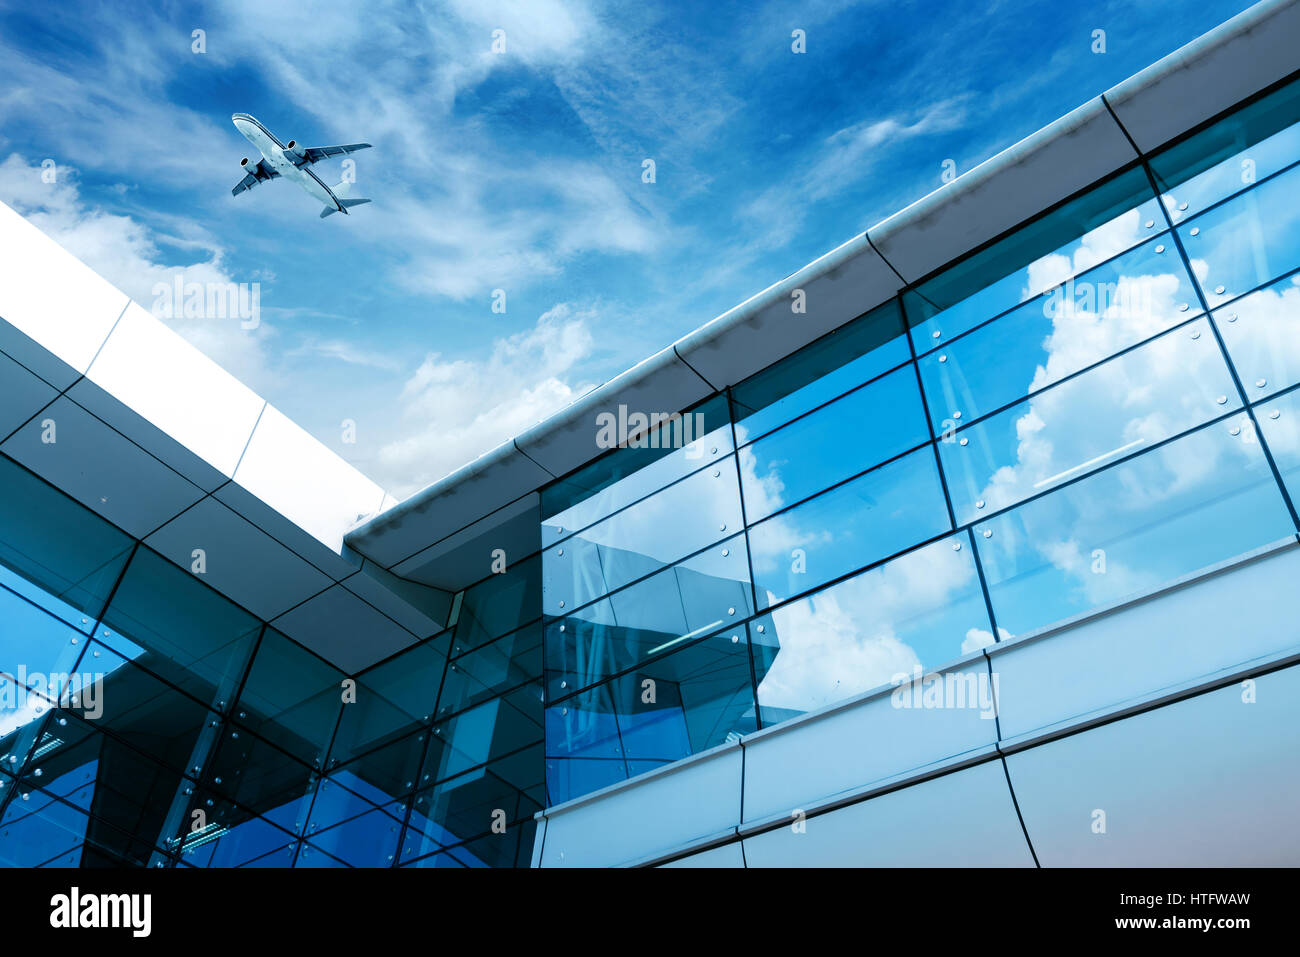 Glass Curtain Wall Manufacturer Glass Curtain Wall And Aircraft Against A Blue Sky Stock Photo